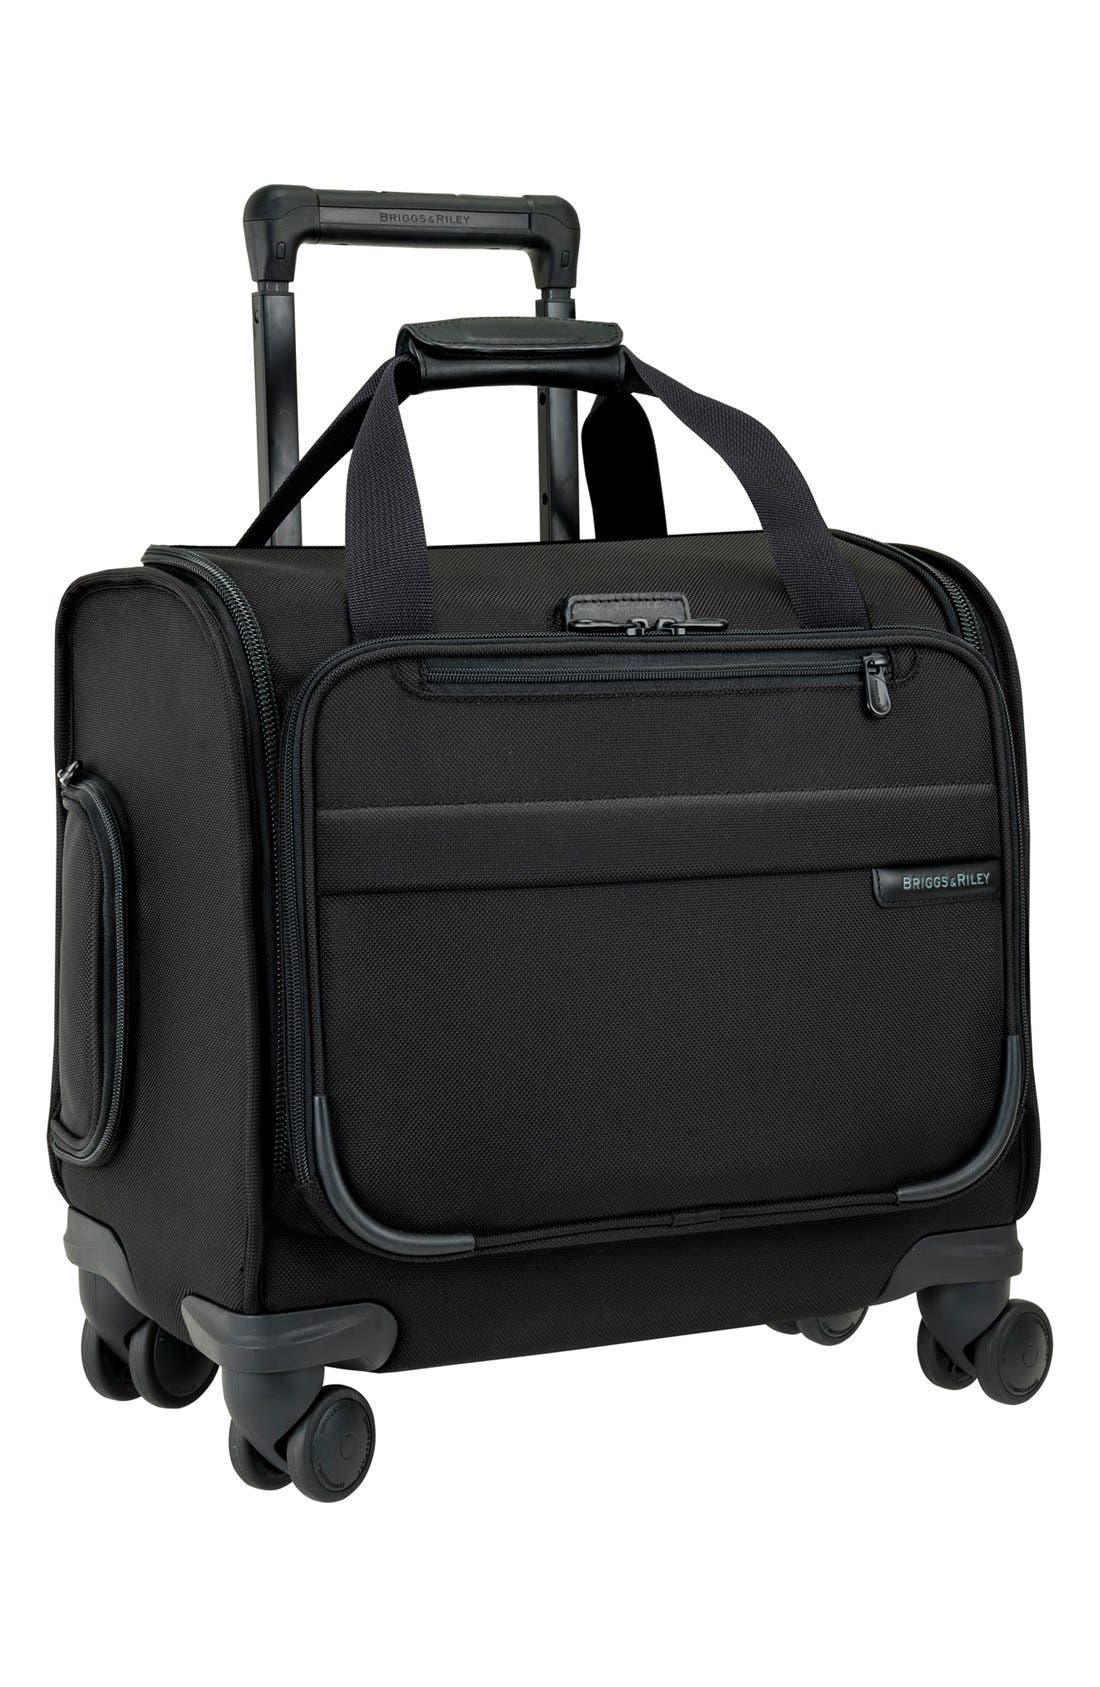 BRIGGS & RILEY Cabin Spinner Carry-On